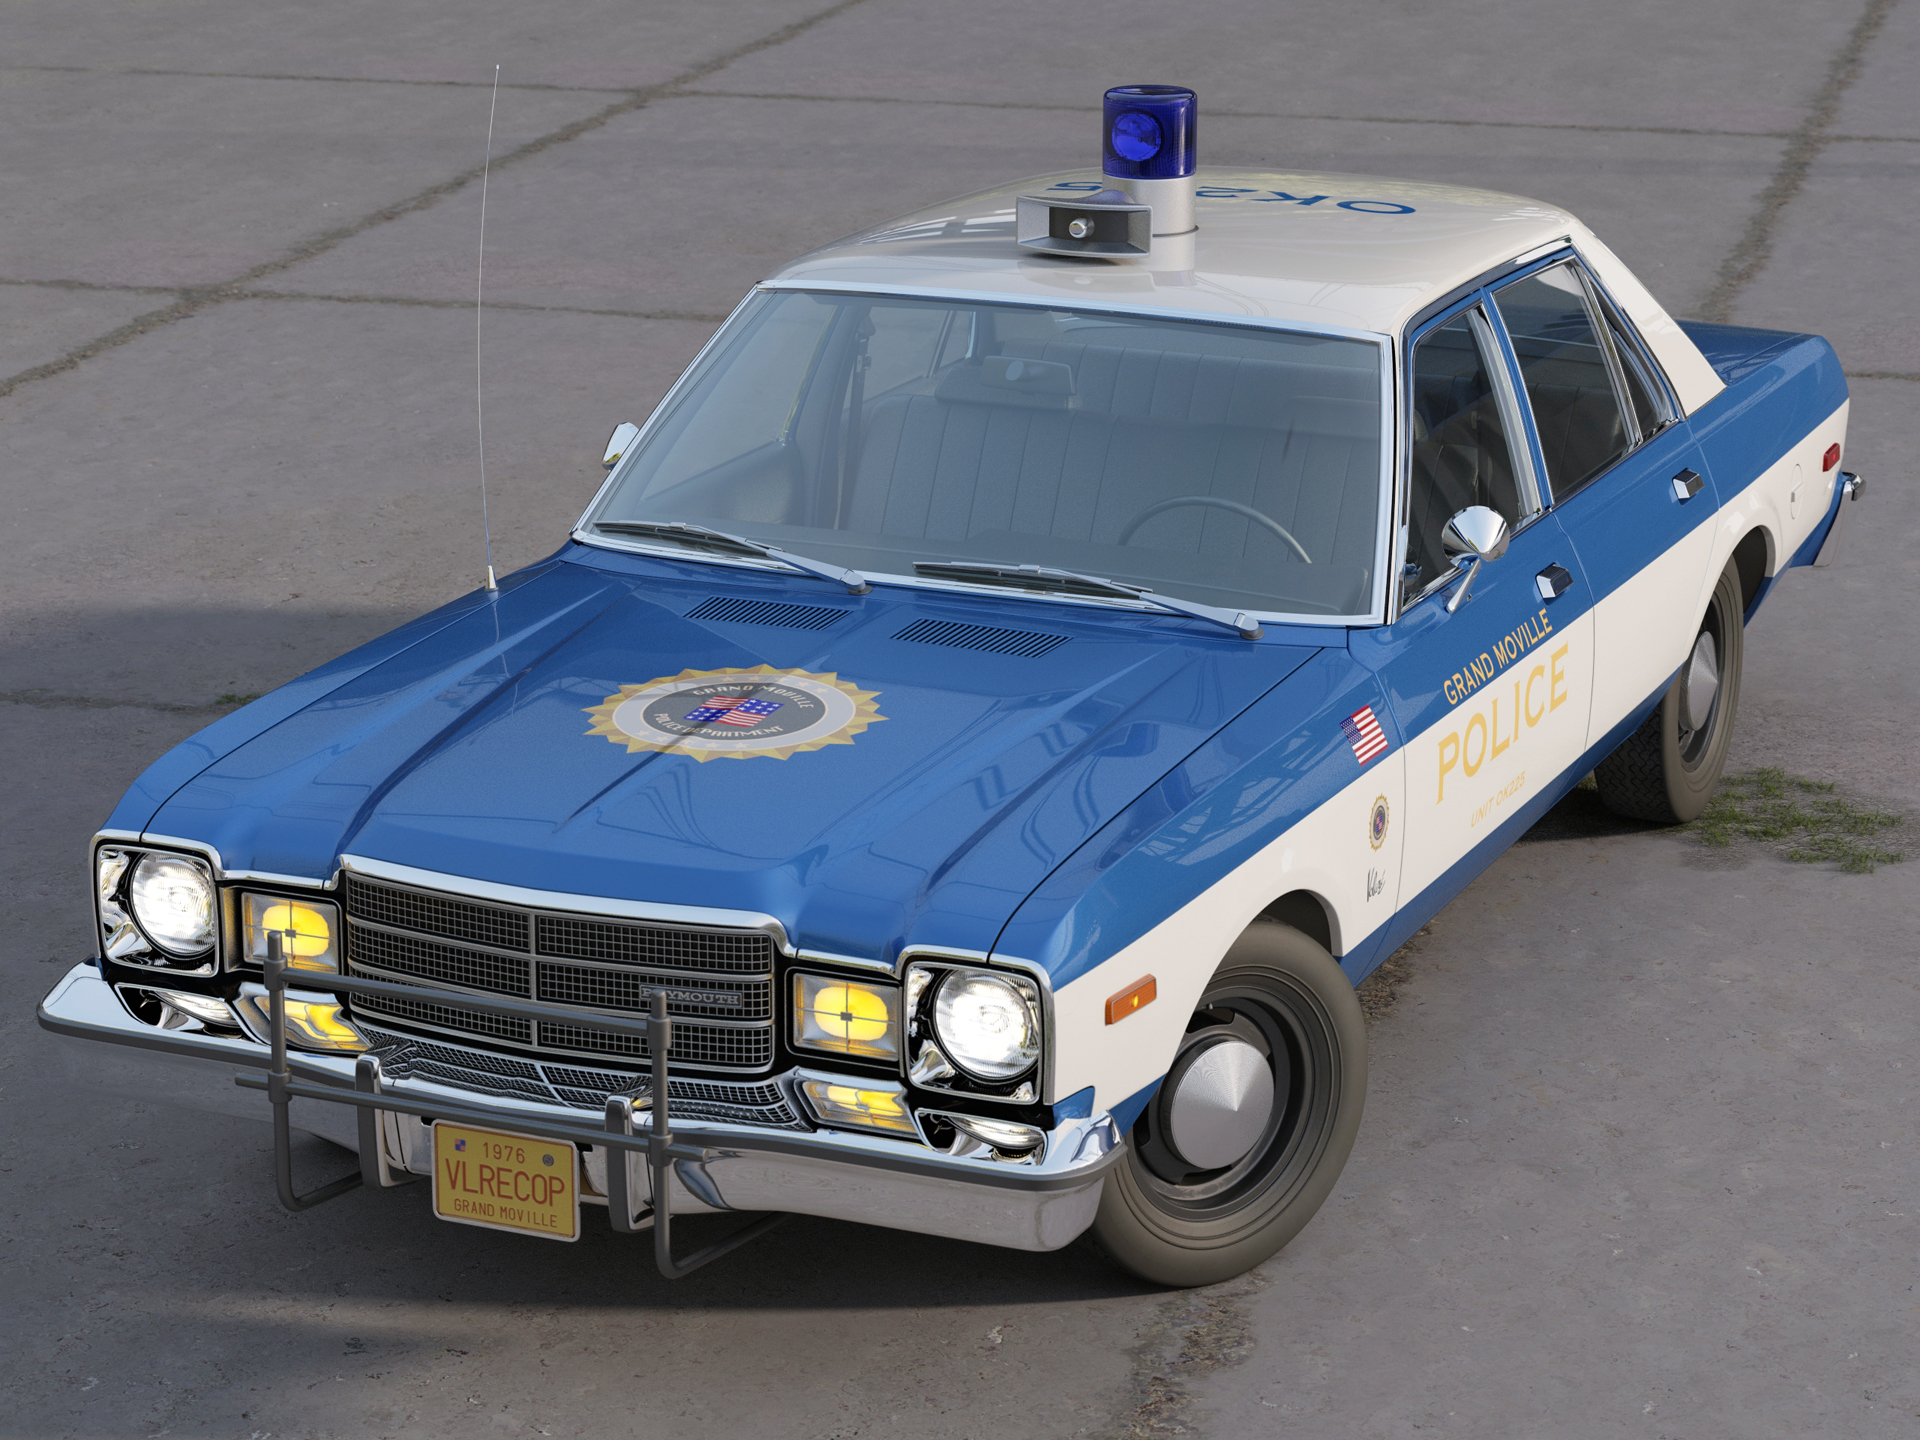 plymouth volare police 1976 3d model 3ds max fbx c4d obj 278343